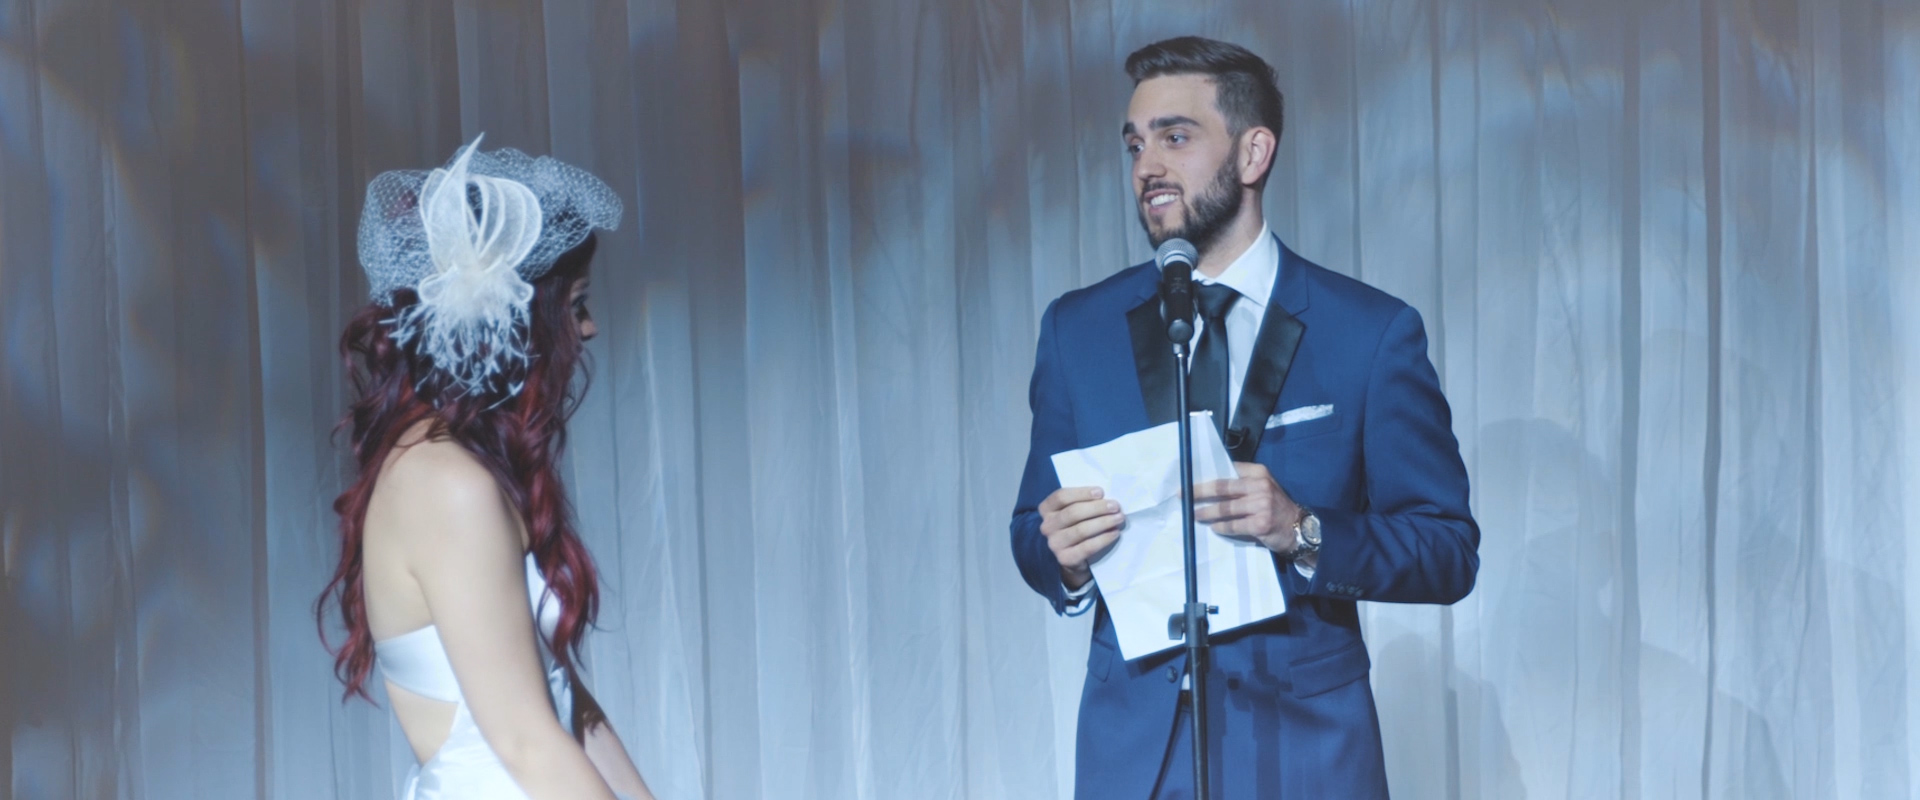 An image of a groom reading his vows during his wedding ceremony; taken from a Toronto Wedding Video